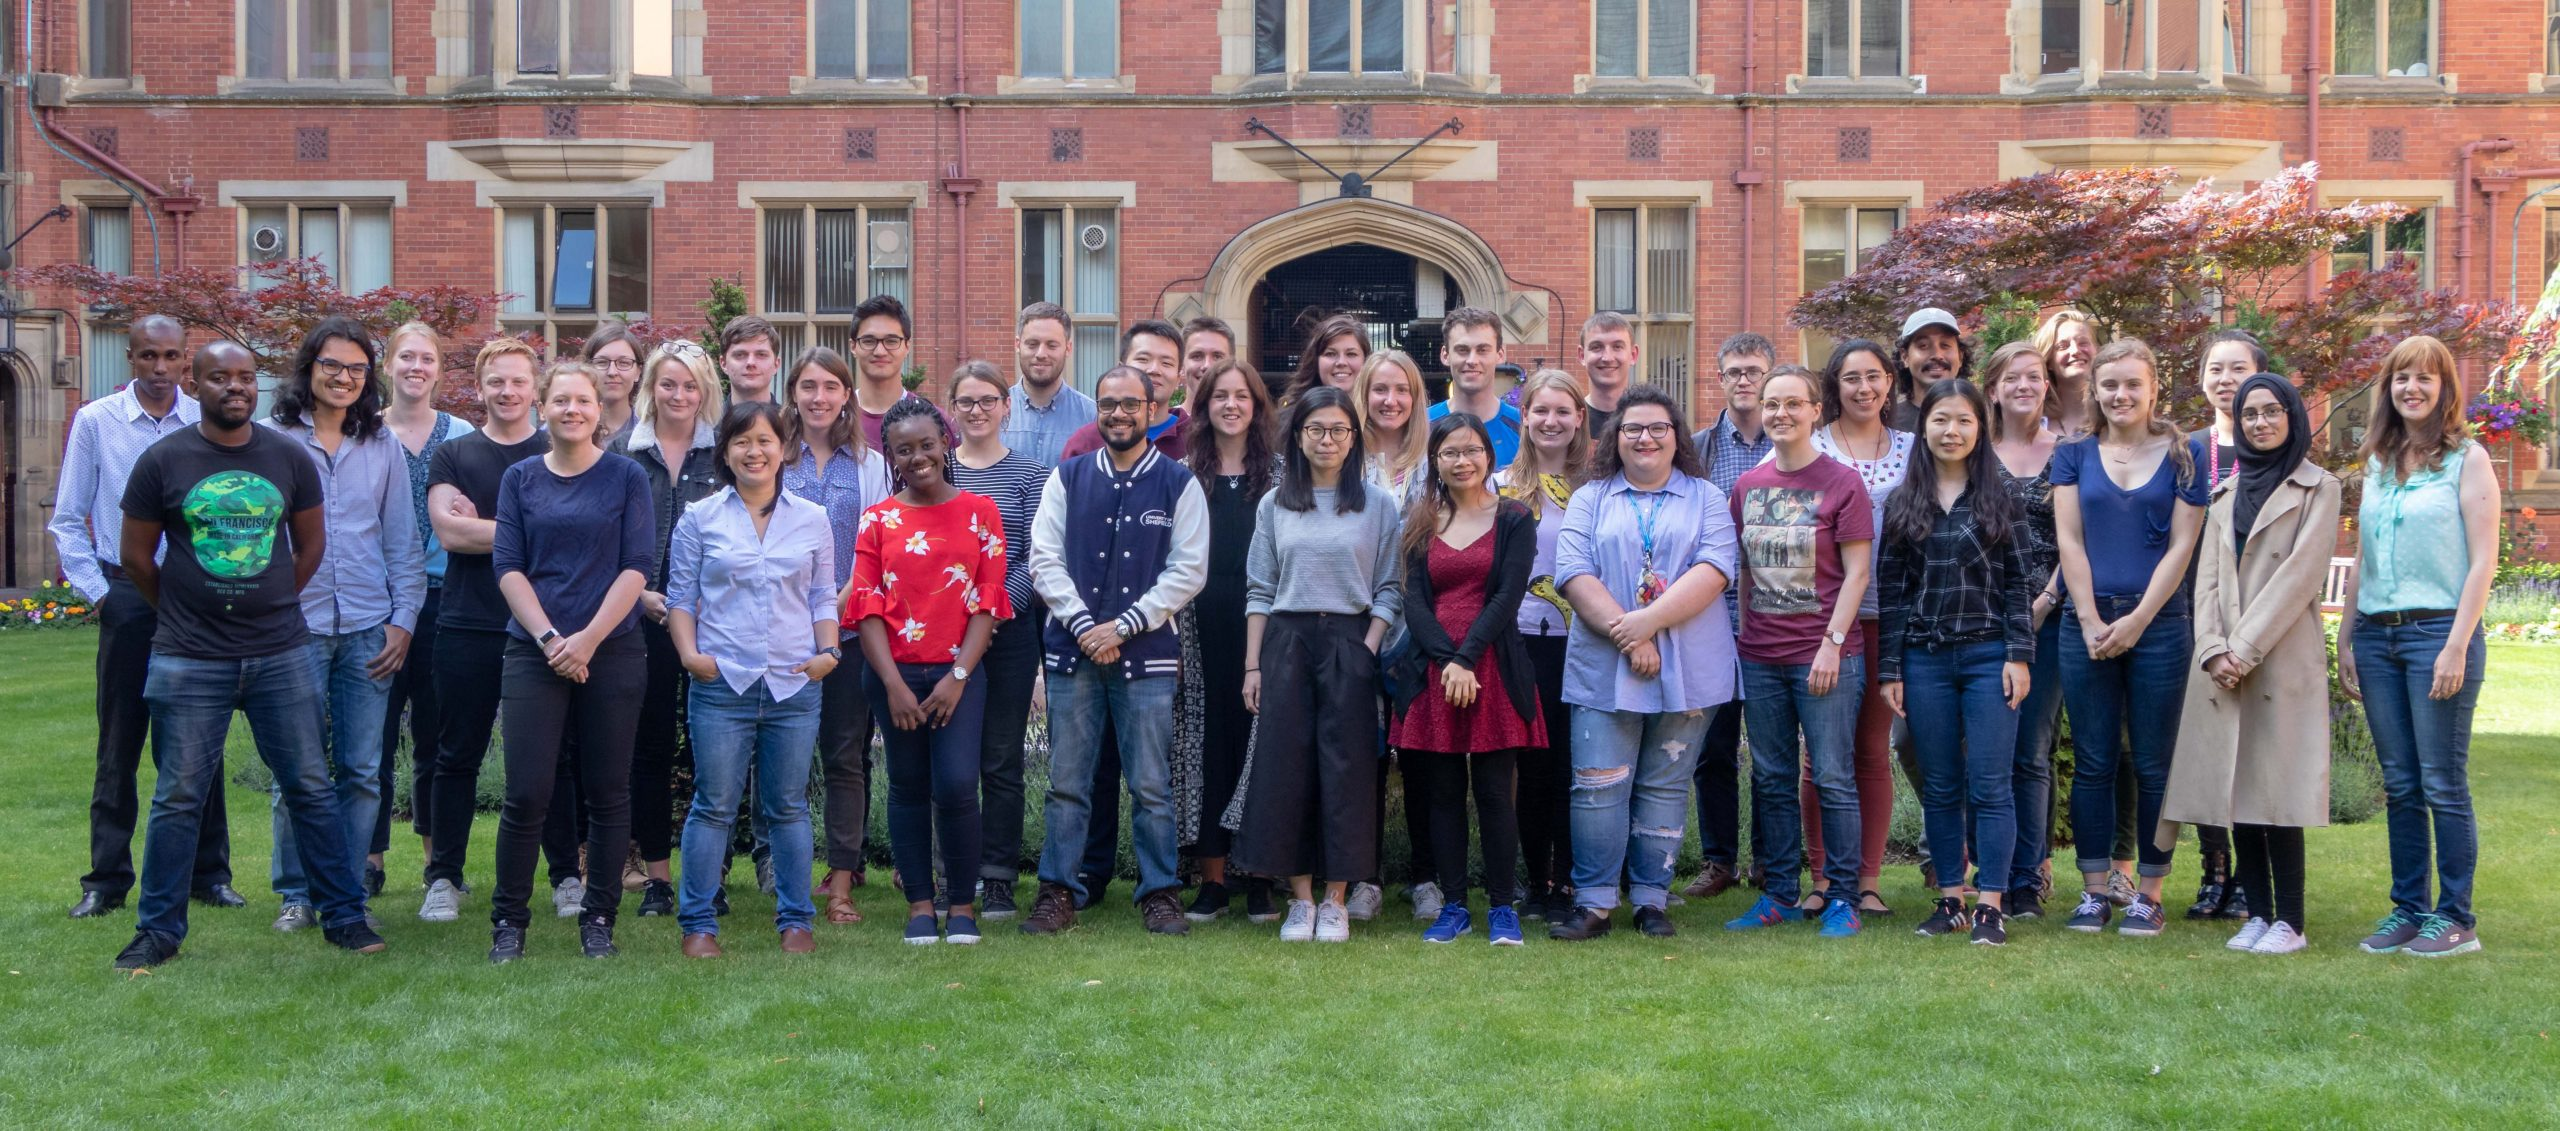 free sustainability webinars are created by our Grantham Scholars who are pictured here